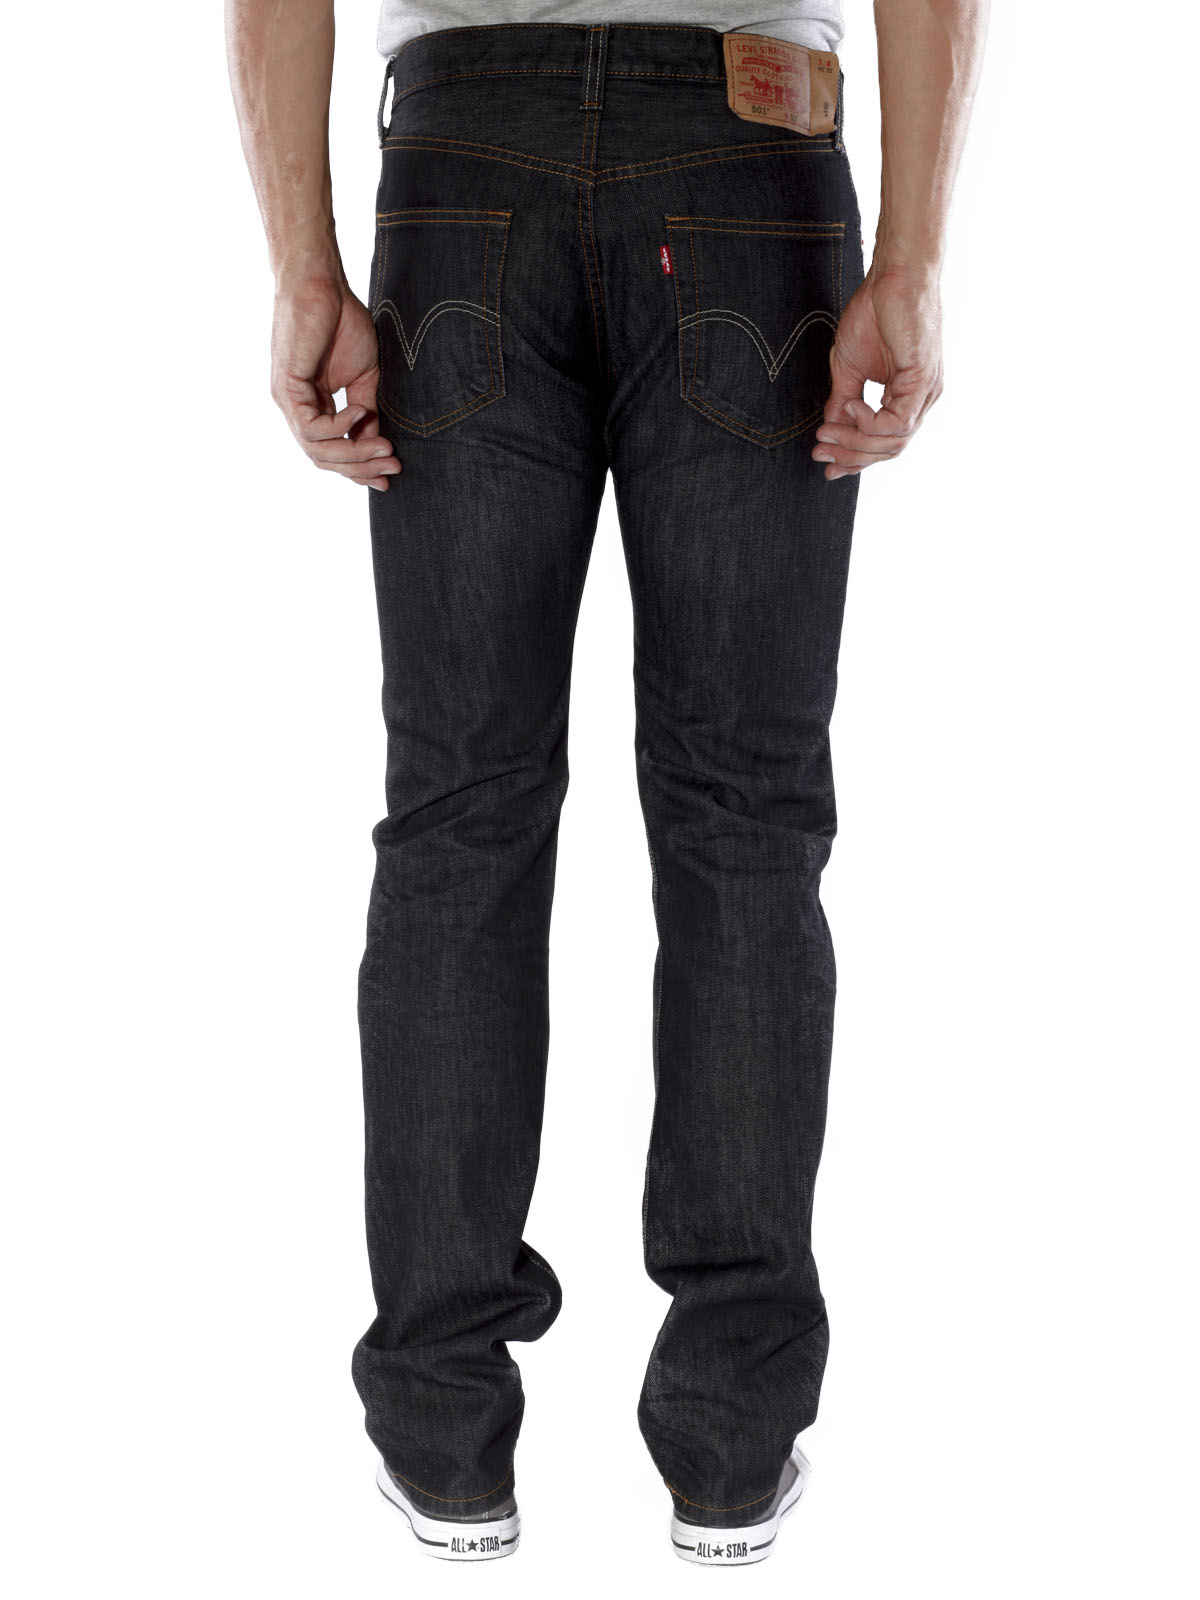 d3a8079c McJeans.ch - Fast Delivery | Levi\'s 501 Jeans iconic black | Free ...